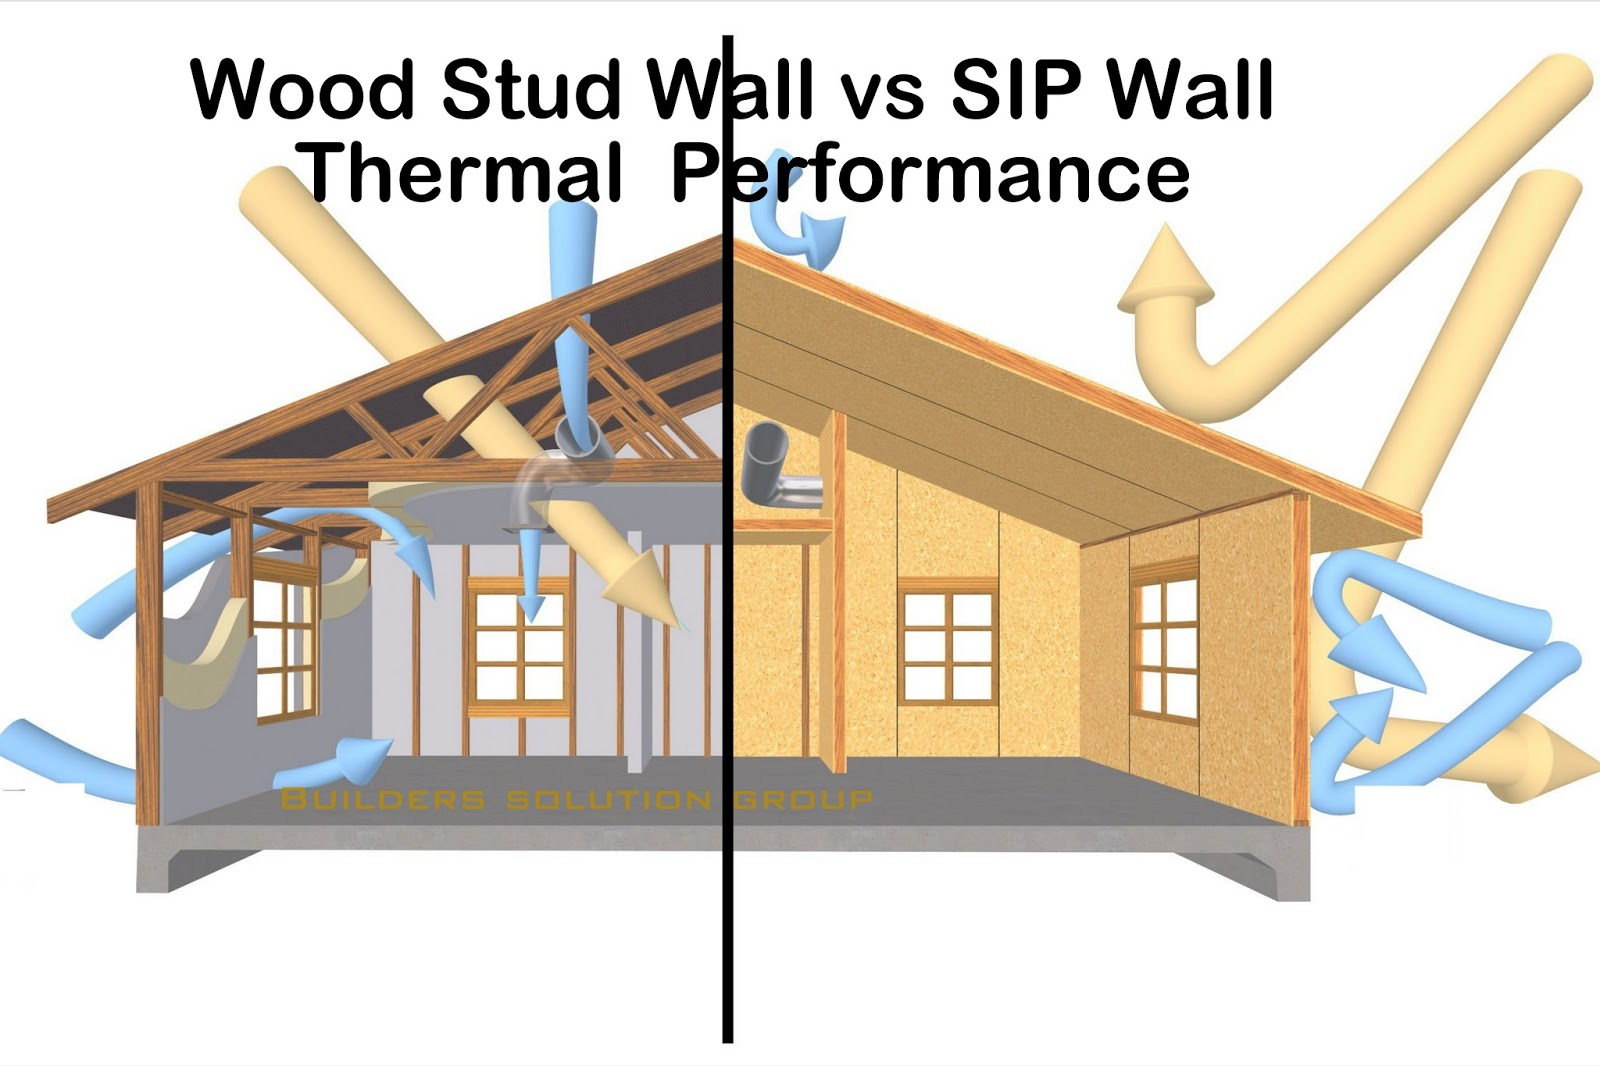 SIP Wall Outperform a Wood Stud Wall Of equal Thickness ...